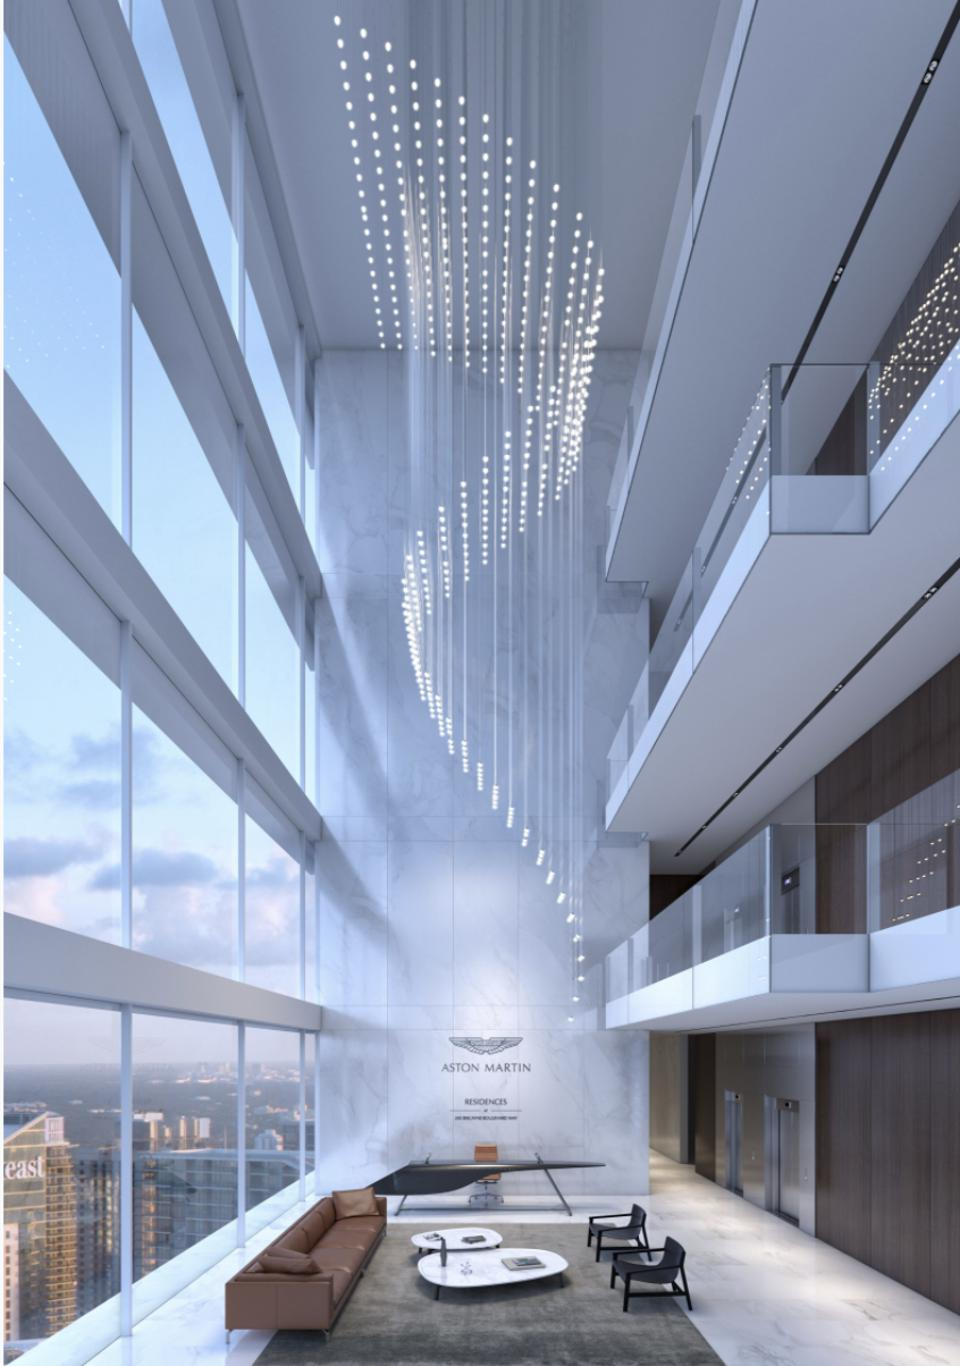 The sky lobby at Aston Martin Residences Miami